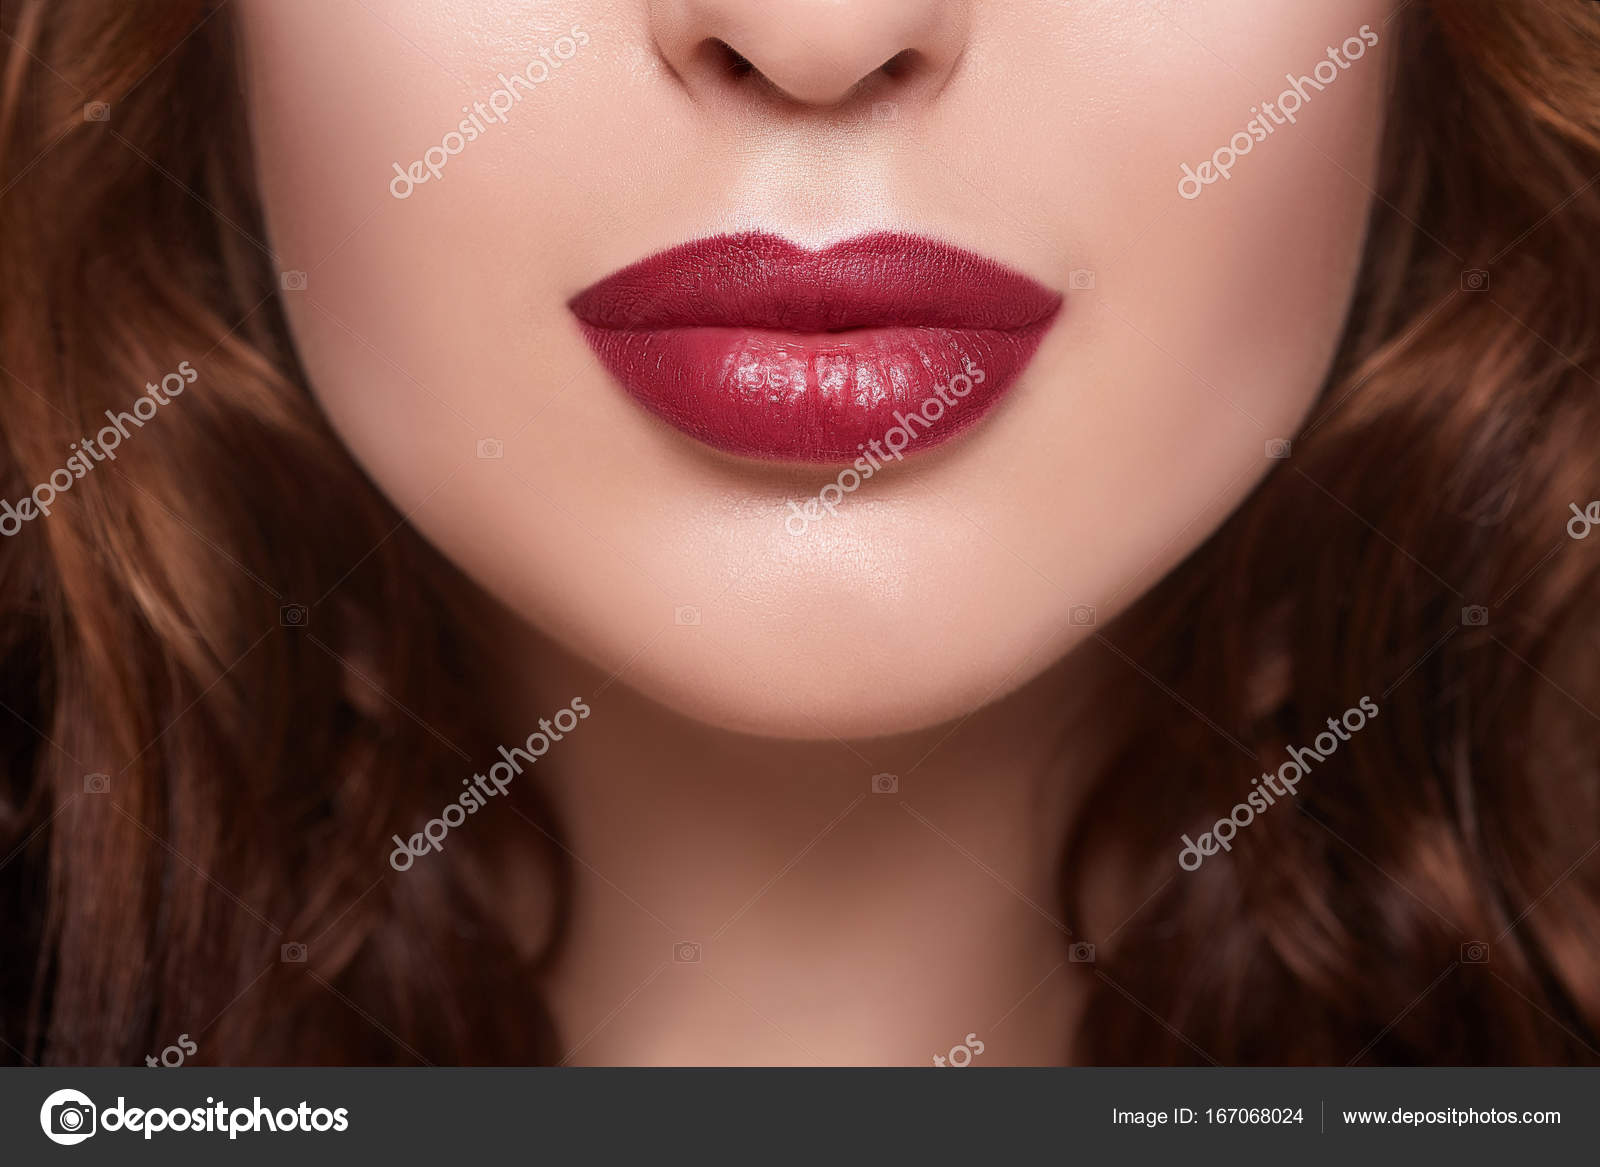 women lips with red lipstick close up perfect full lips stock